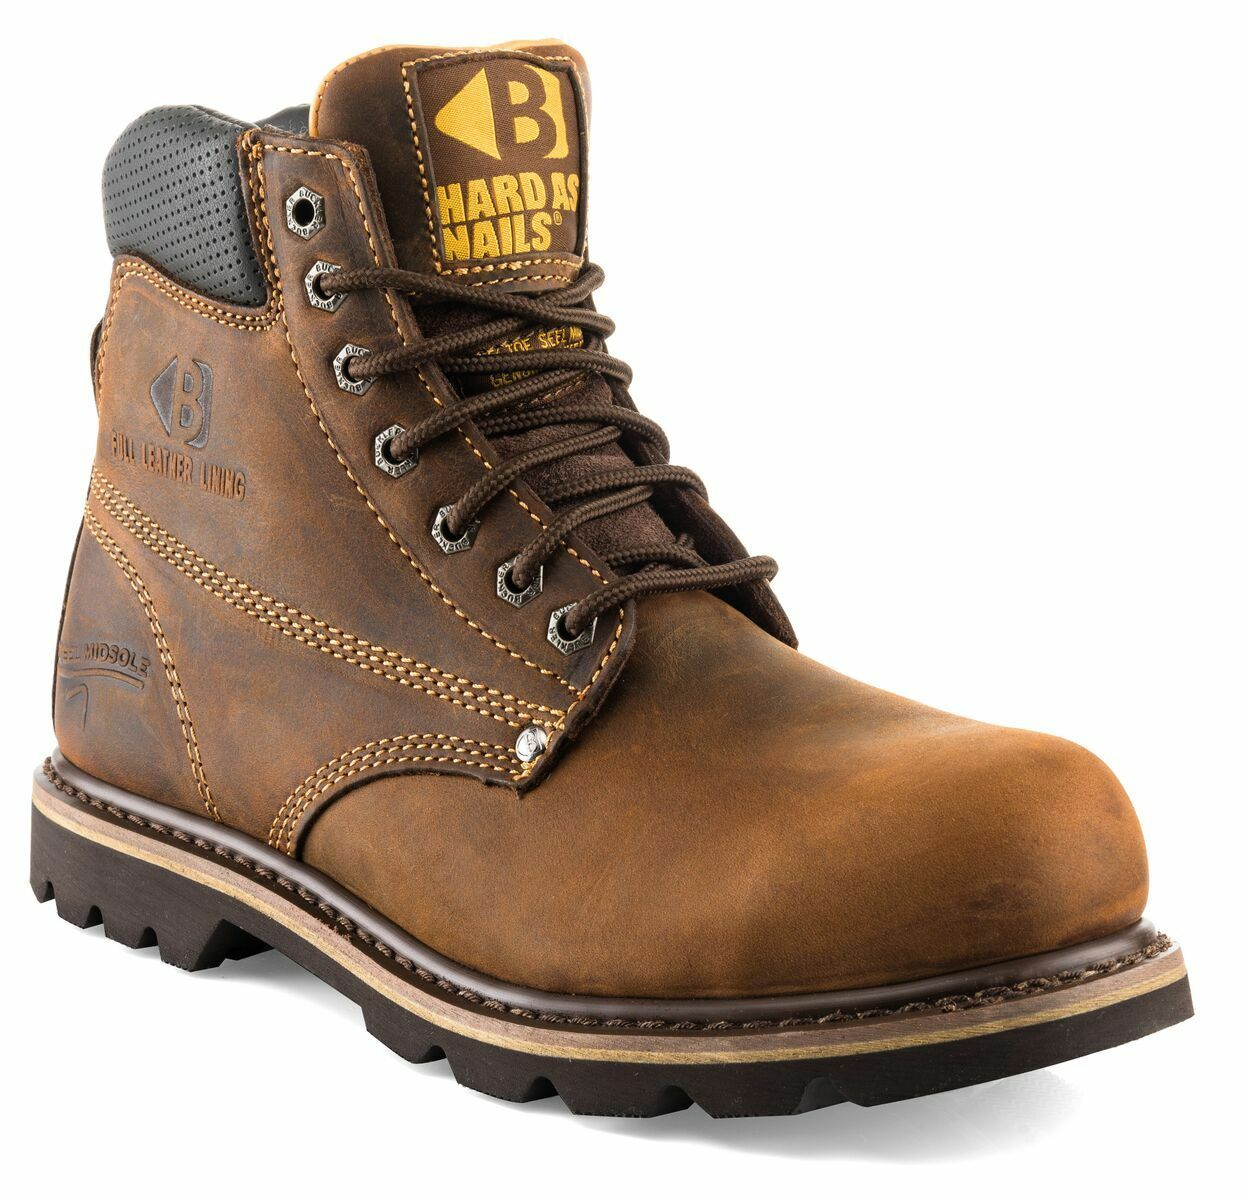 Buckler B425SM Cowhide Lined Safety Work 6-13) botas Dark Marrón (Talla 6-13) Work Hombres 89344a